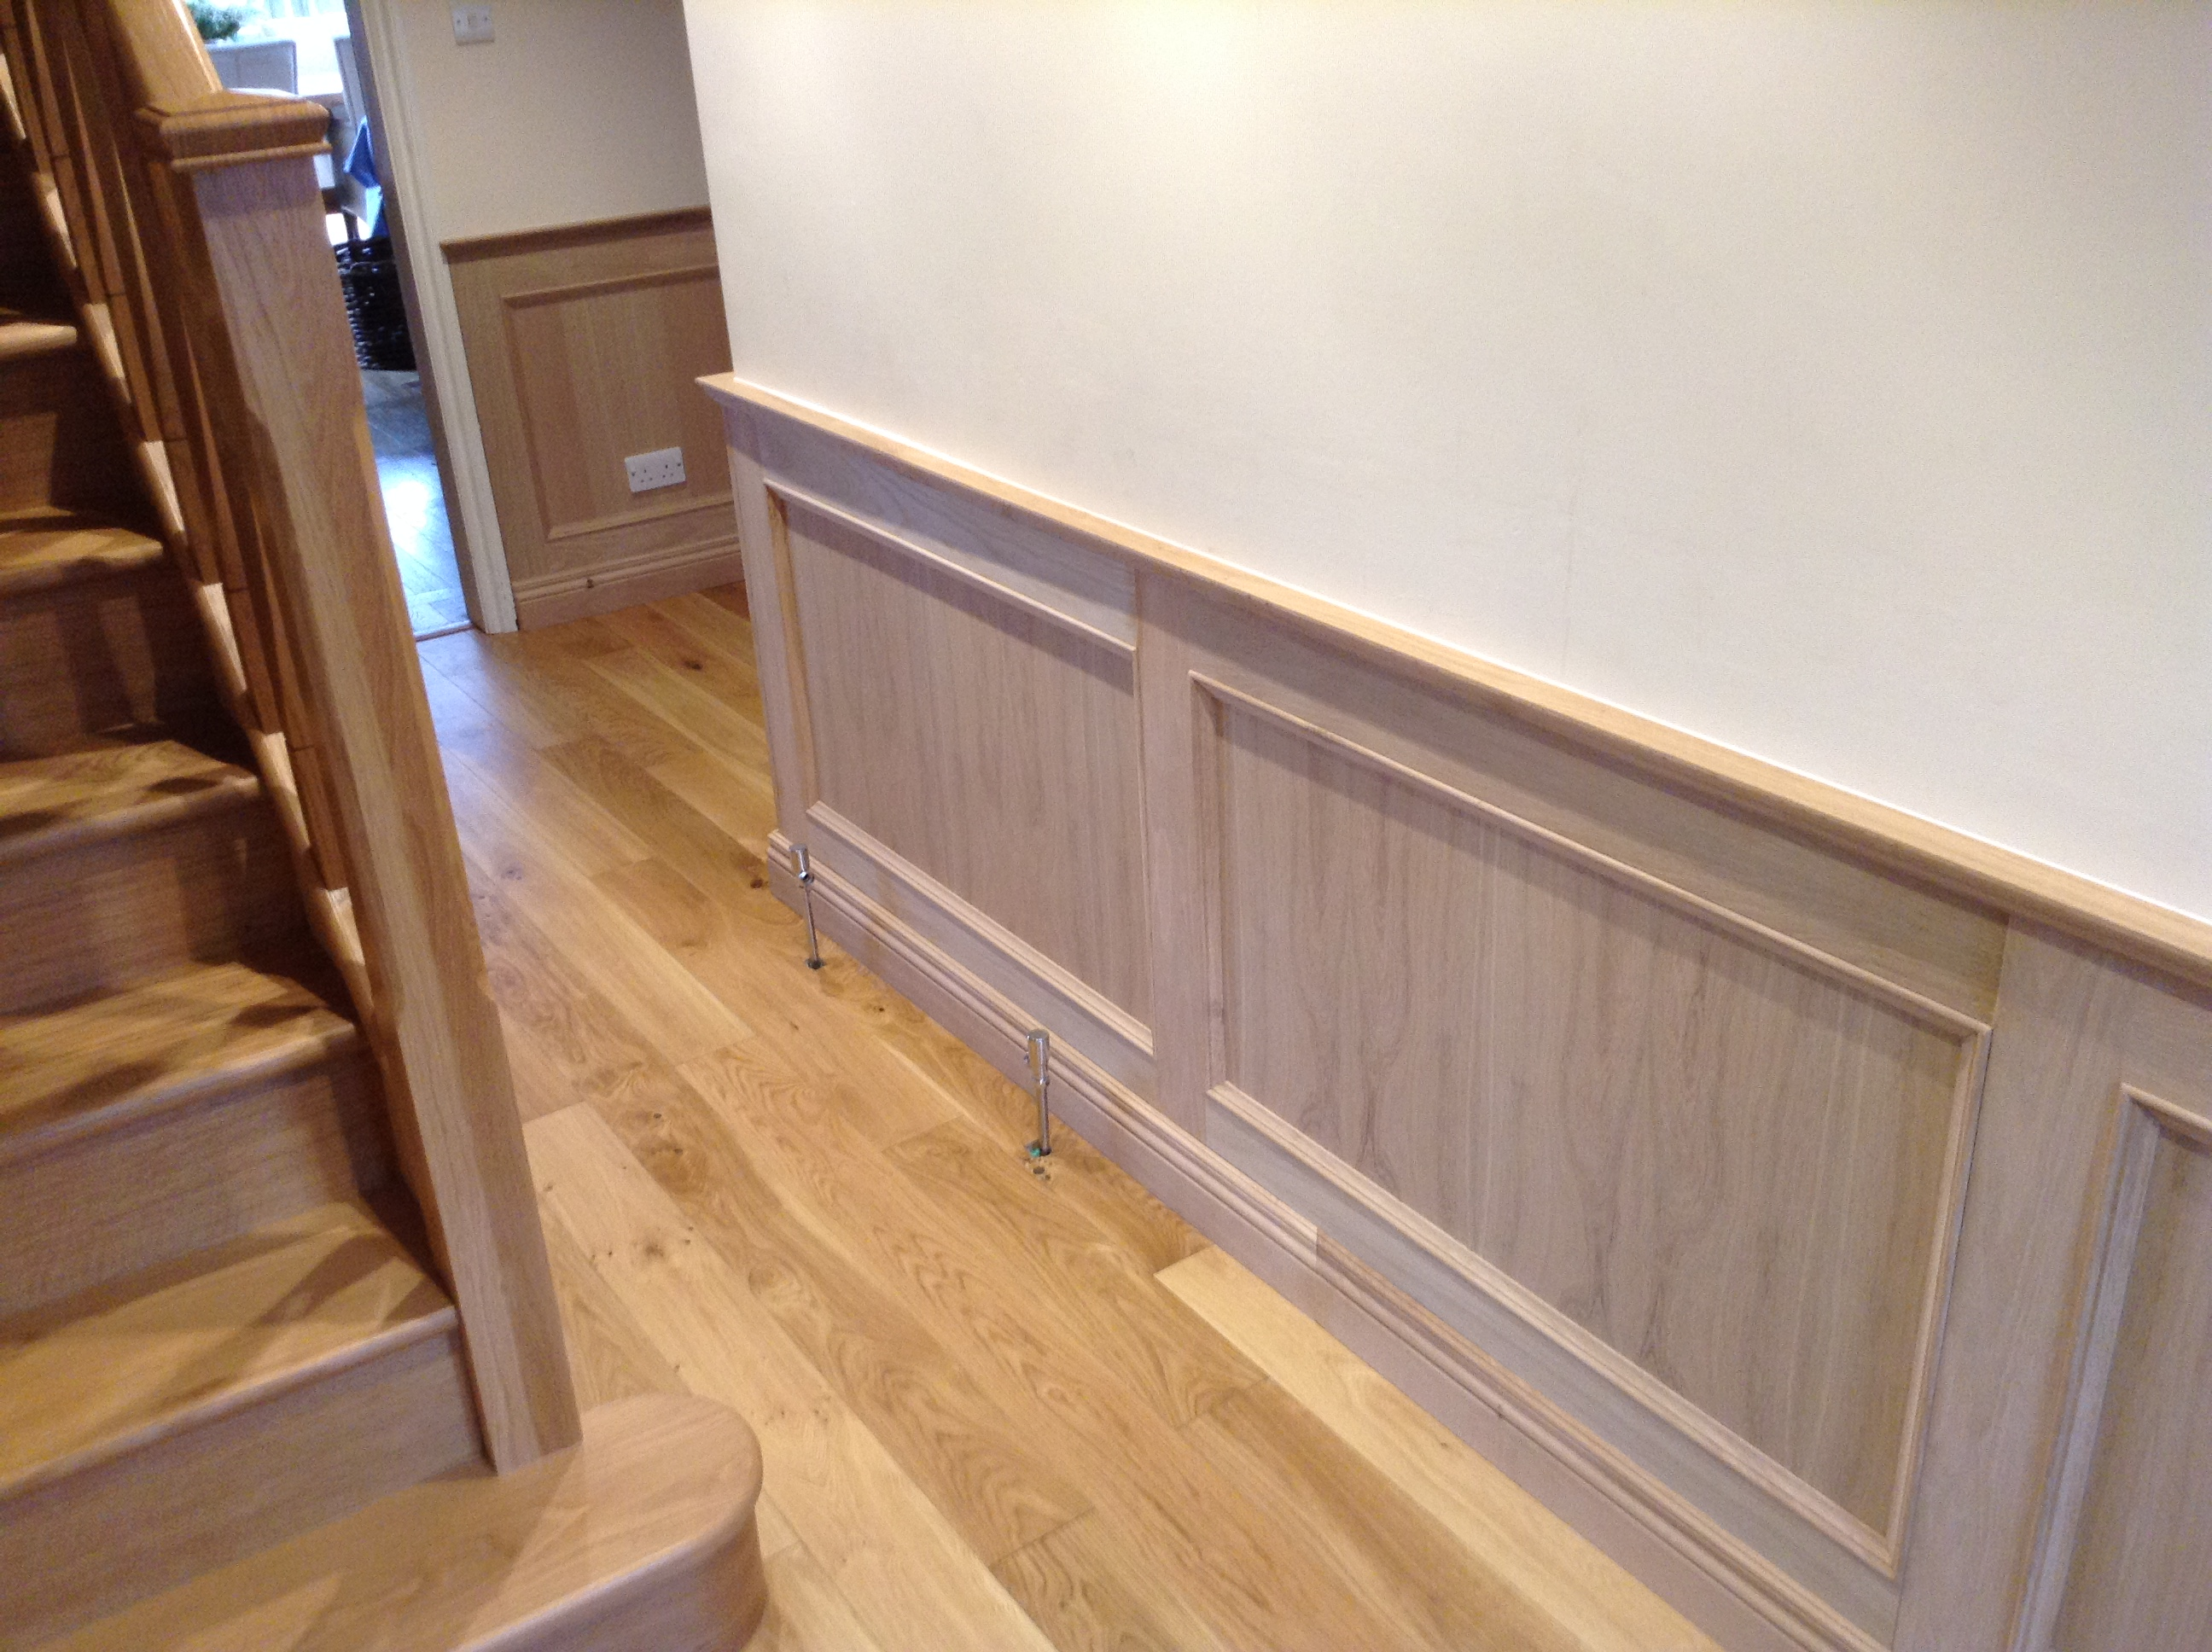 Oak Panelling By Wall Panelling Experts Wooden Wall Panels Wall Paneling Oak Panels